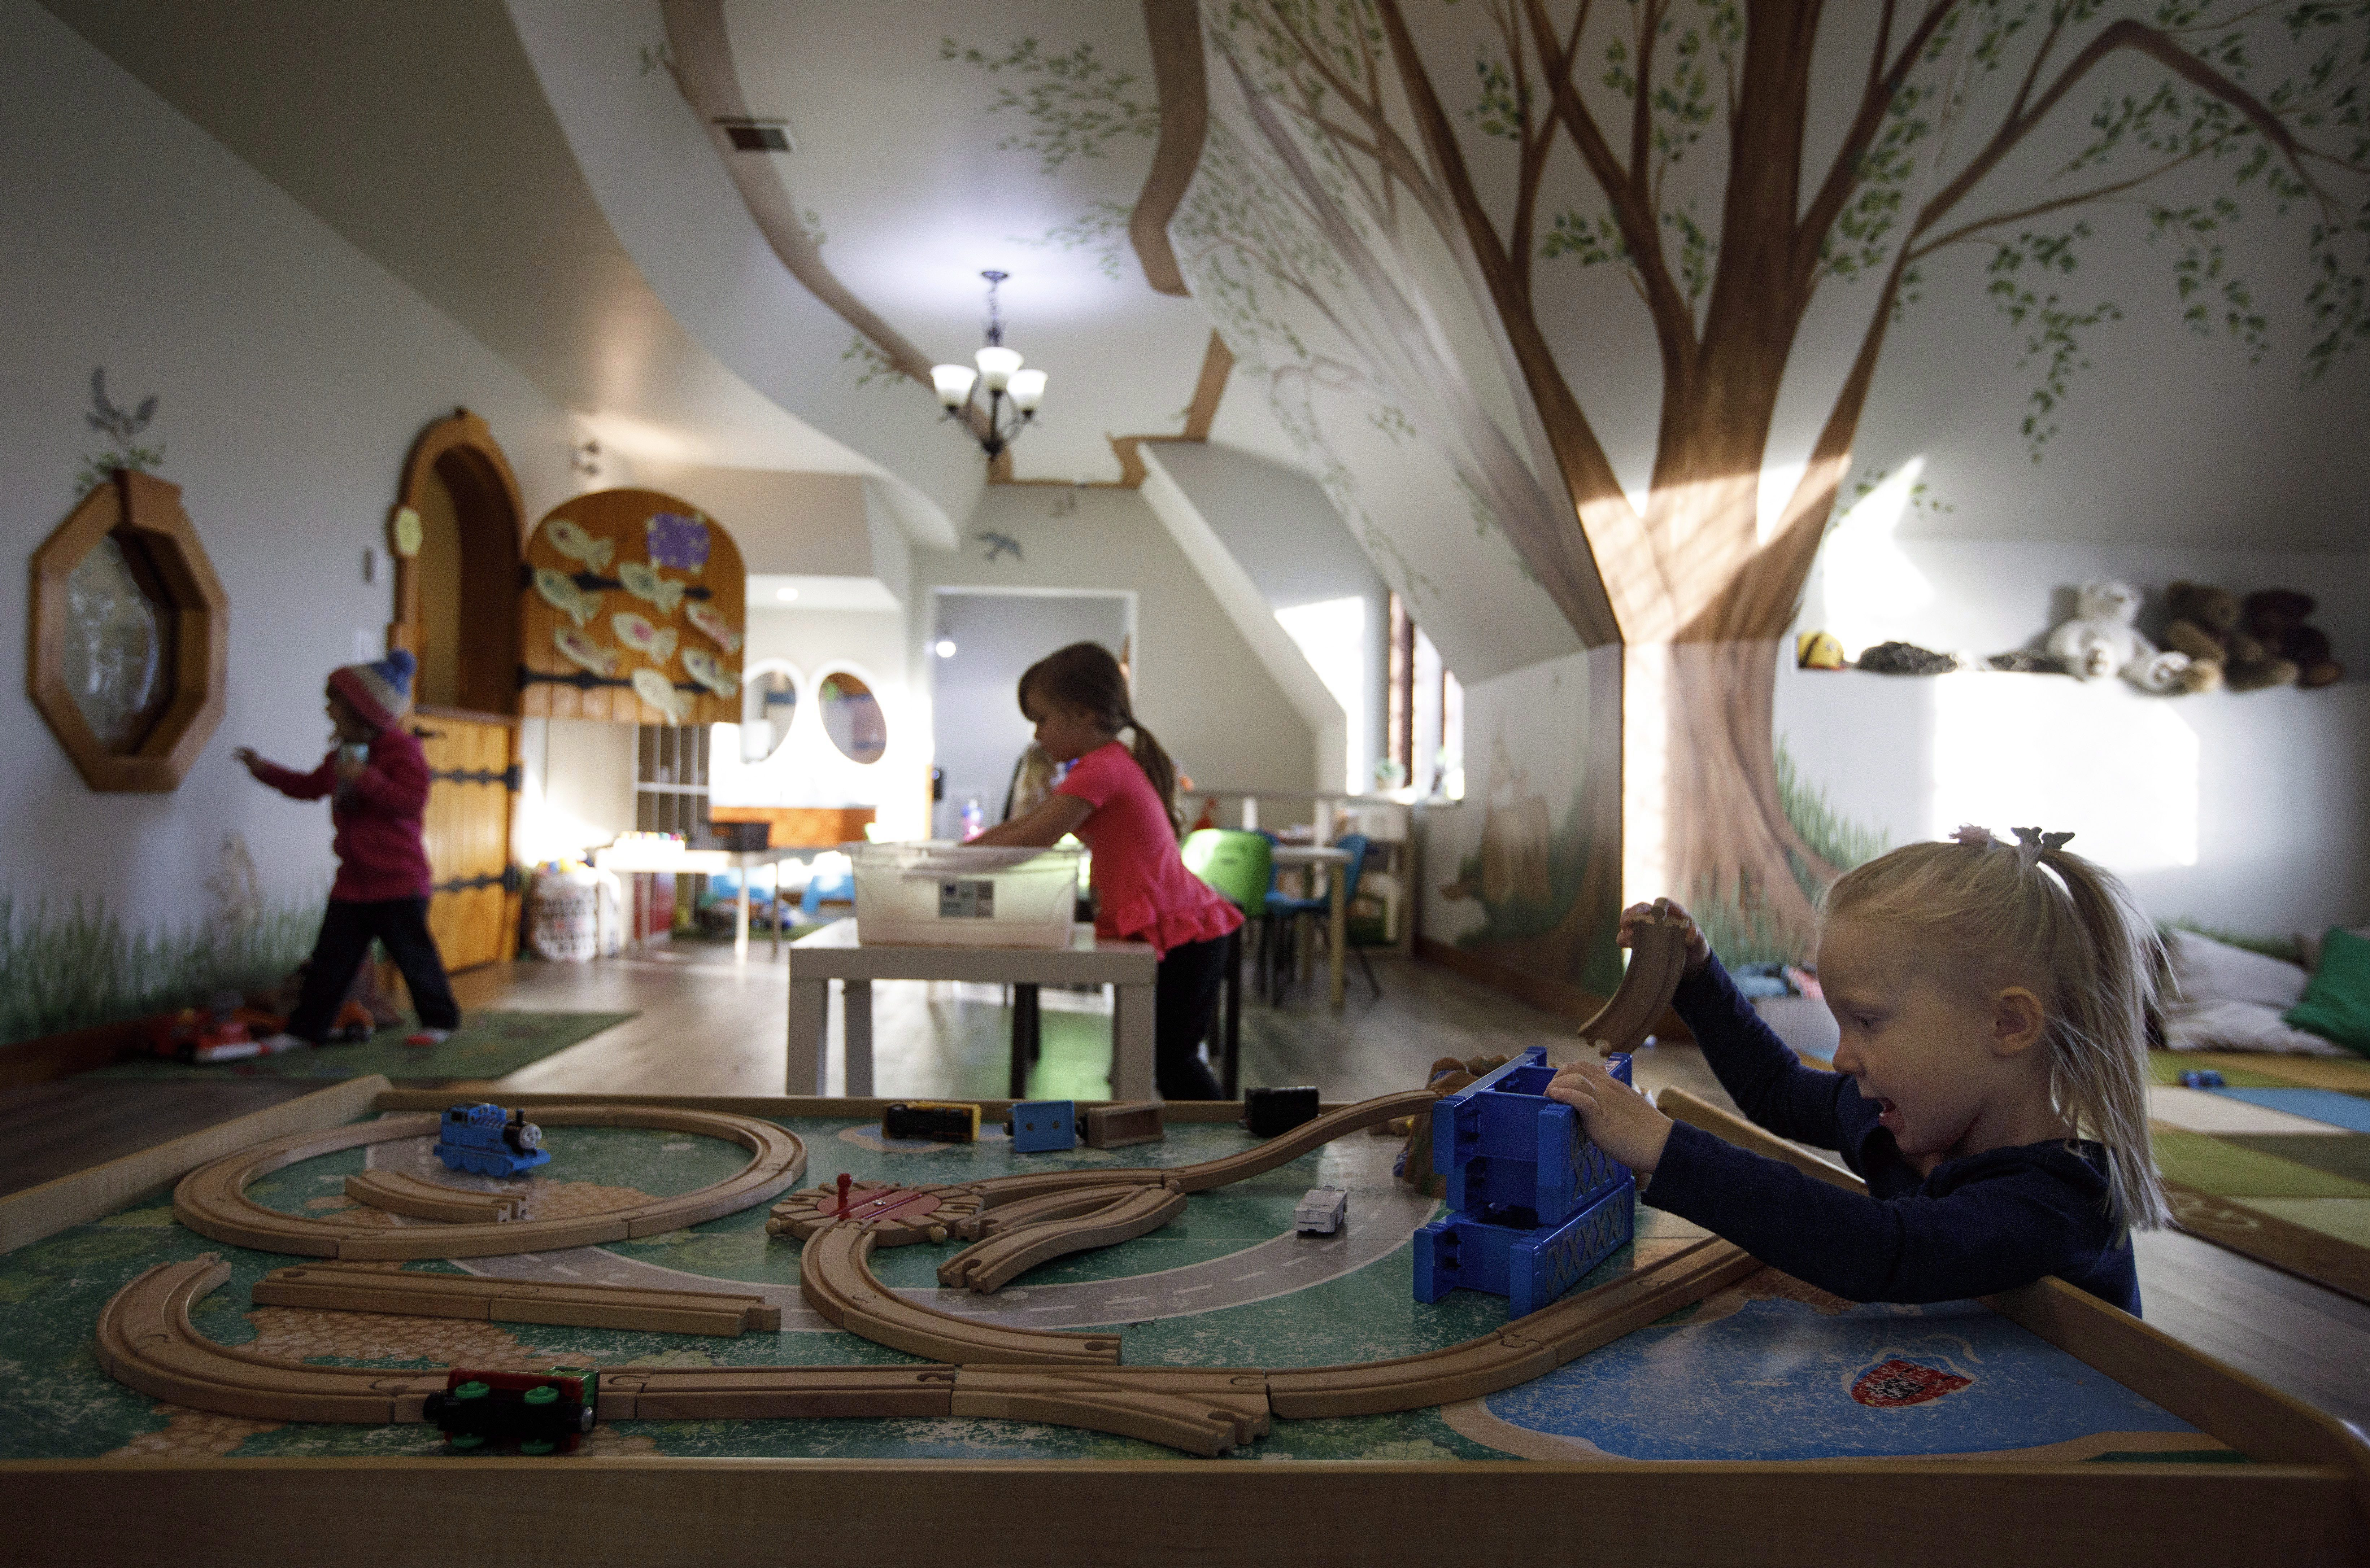 Kids play at Fable Child Care Centre in Morinville, Alta., on Oct. 24,